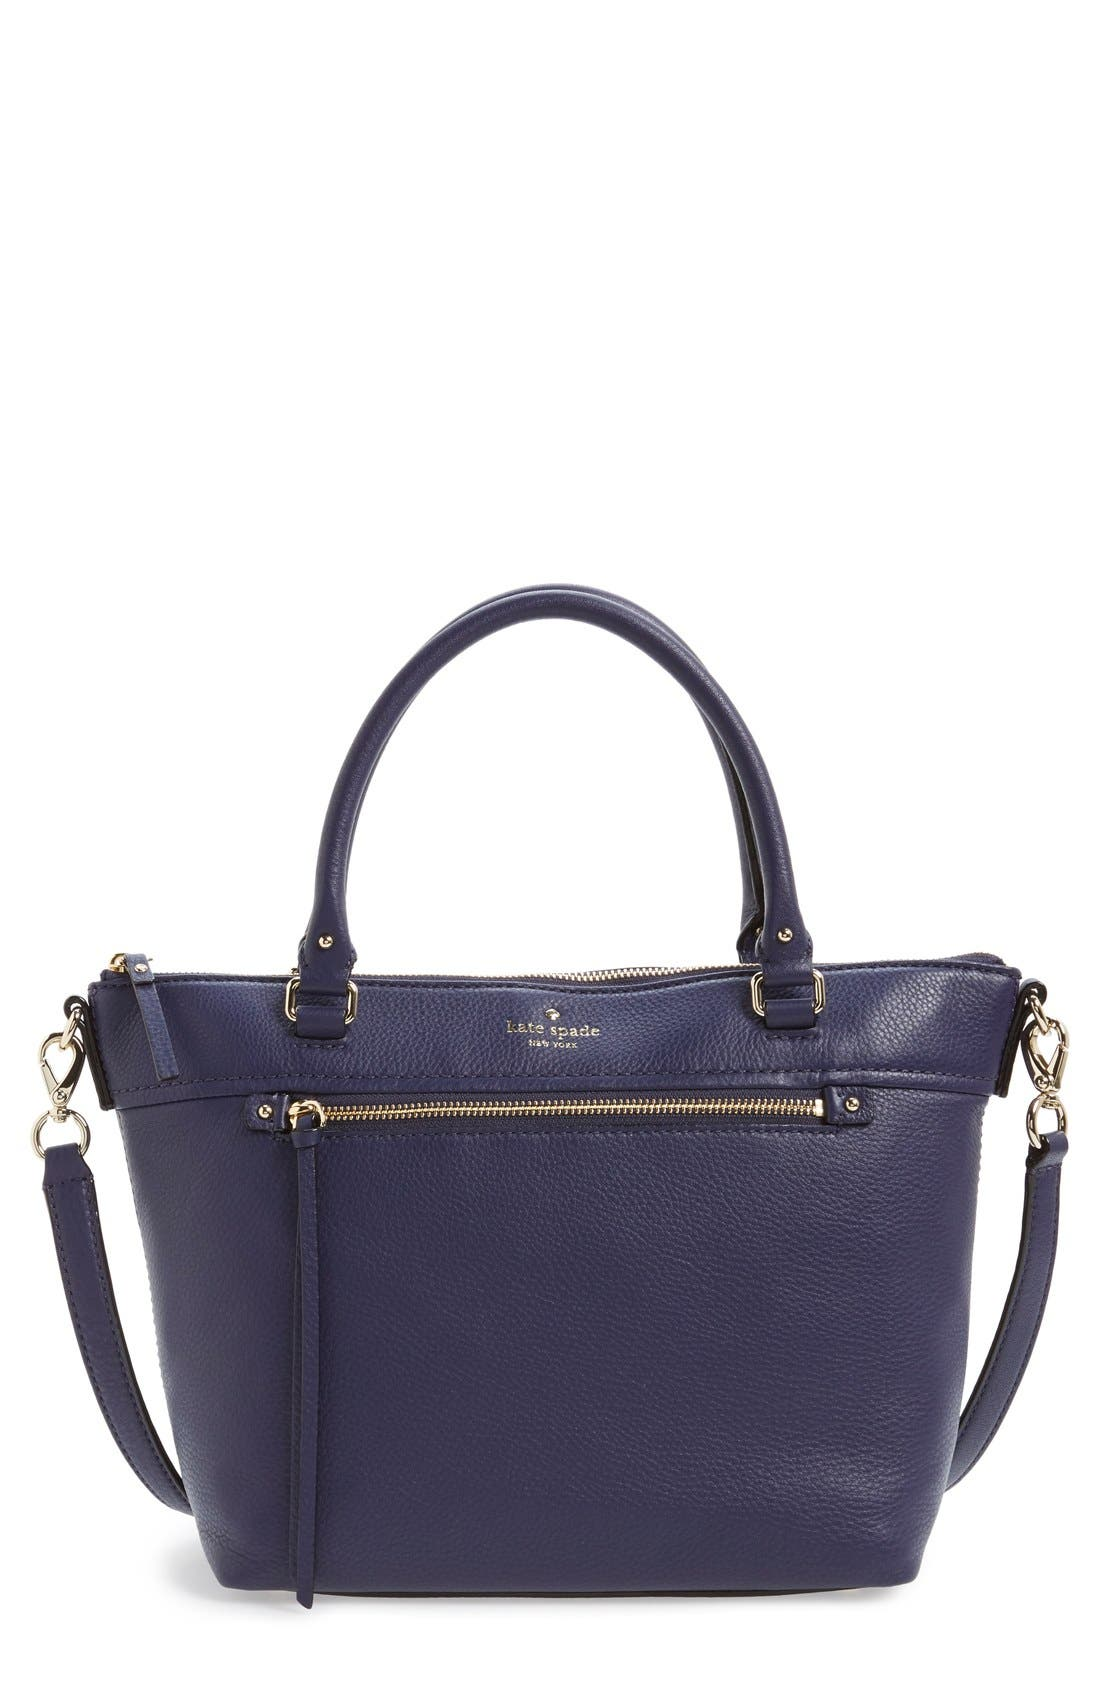 Main Image - kate spade new york 'cobble hill - small gina' leather tote